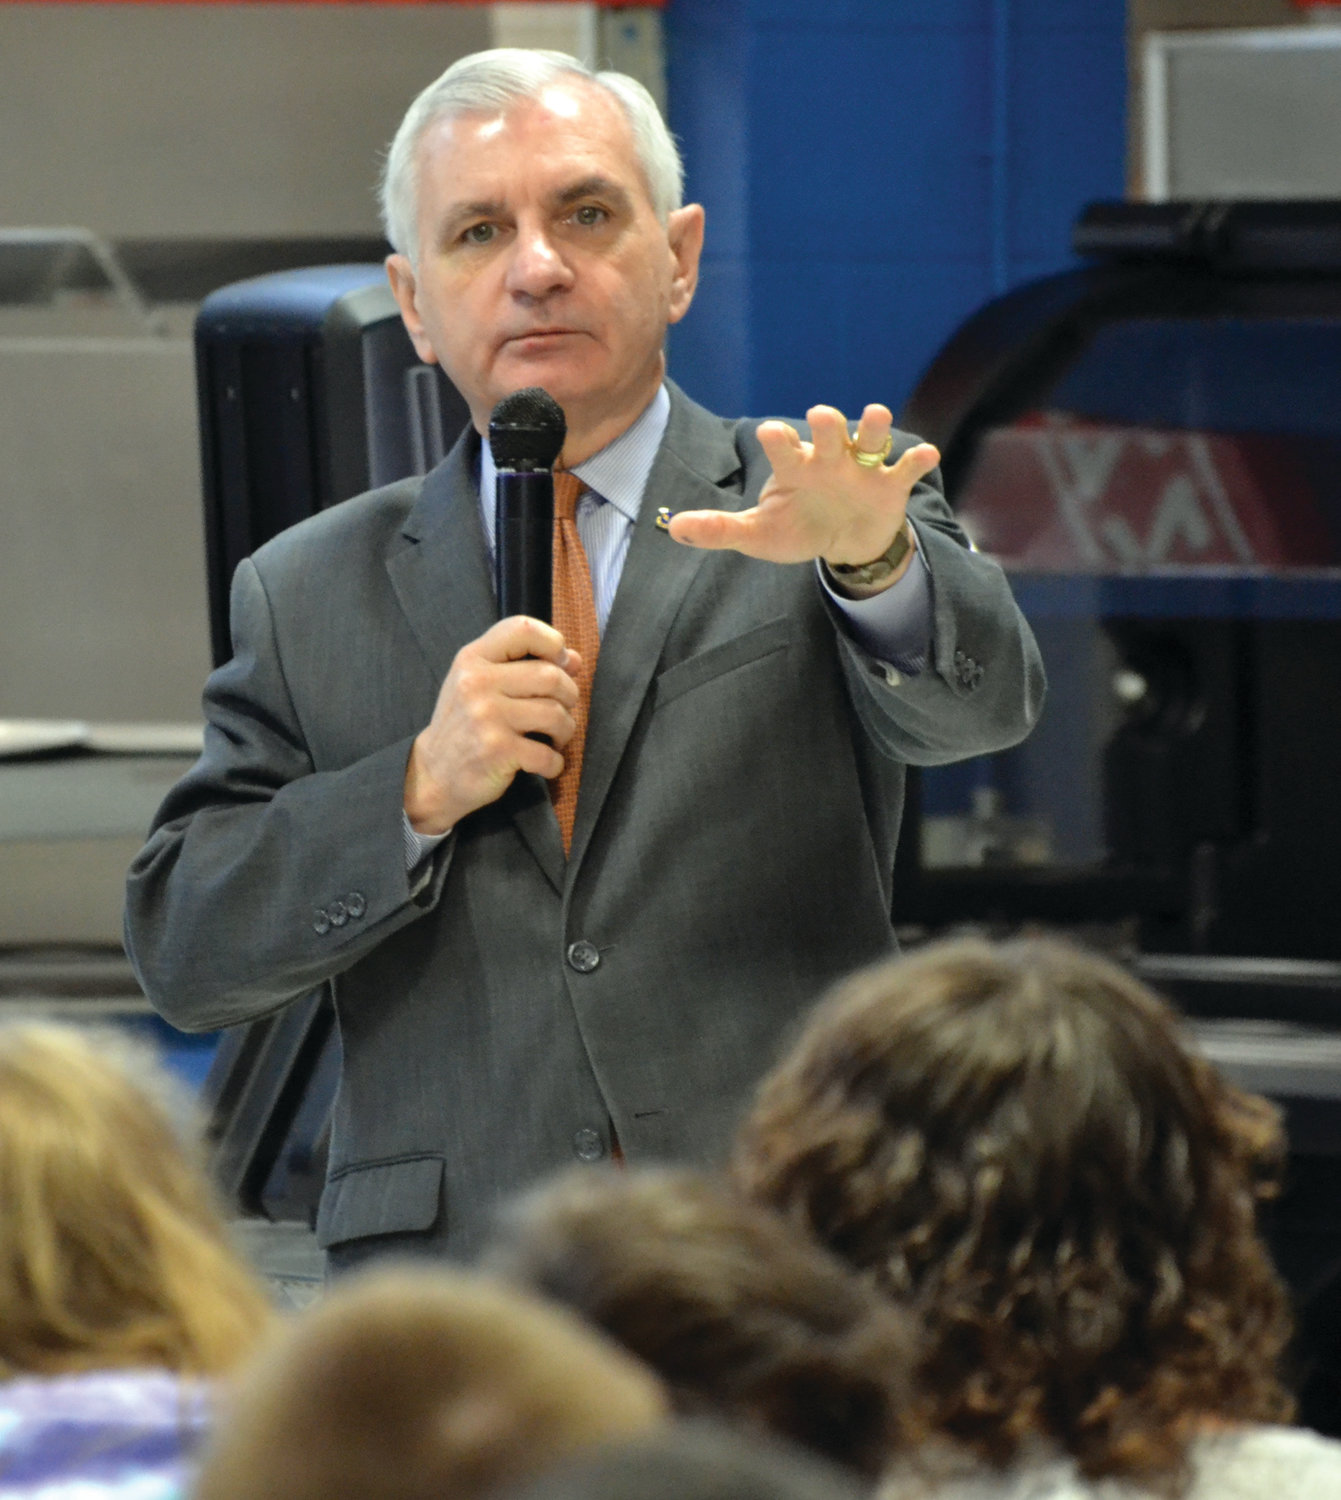 U.S. Sen. Jack Reed stopped by Ferri Middle School on Monday morning to give students background on how the House and Senate operate.